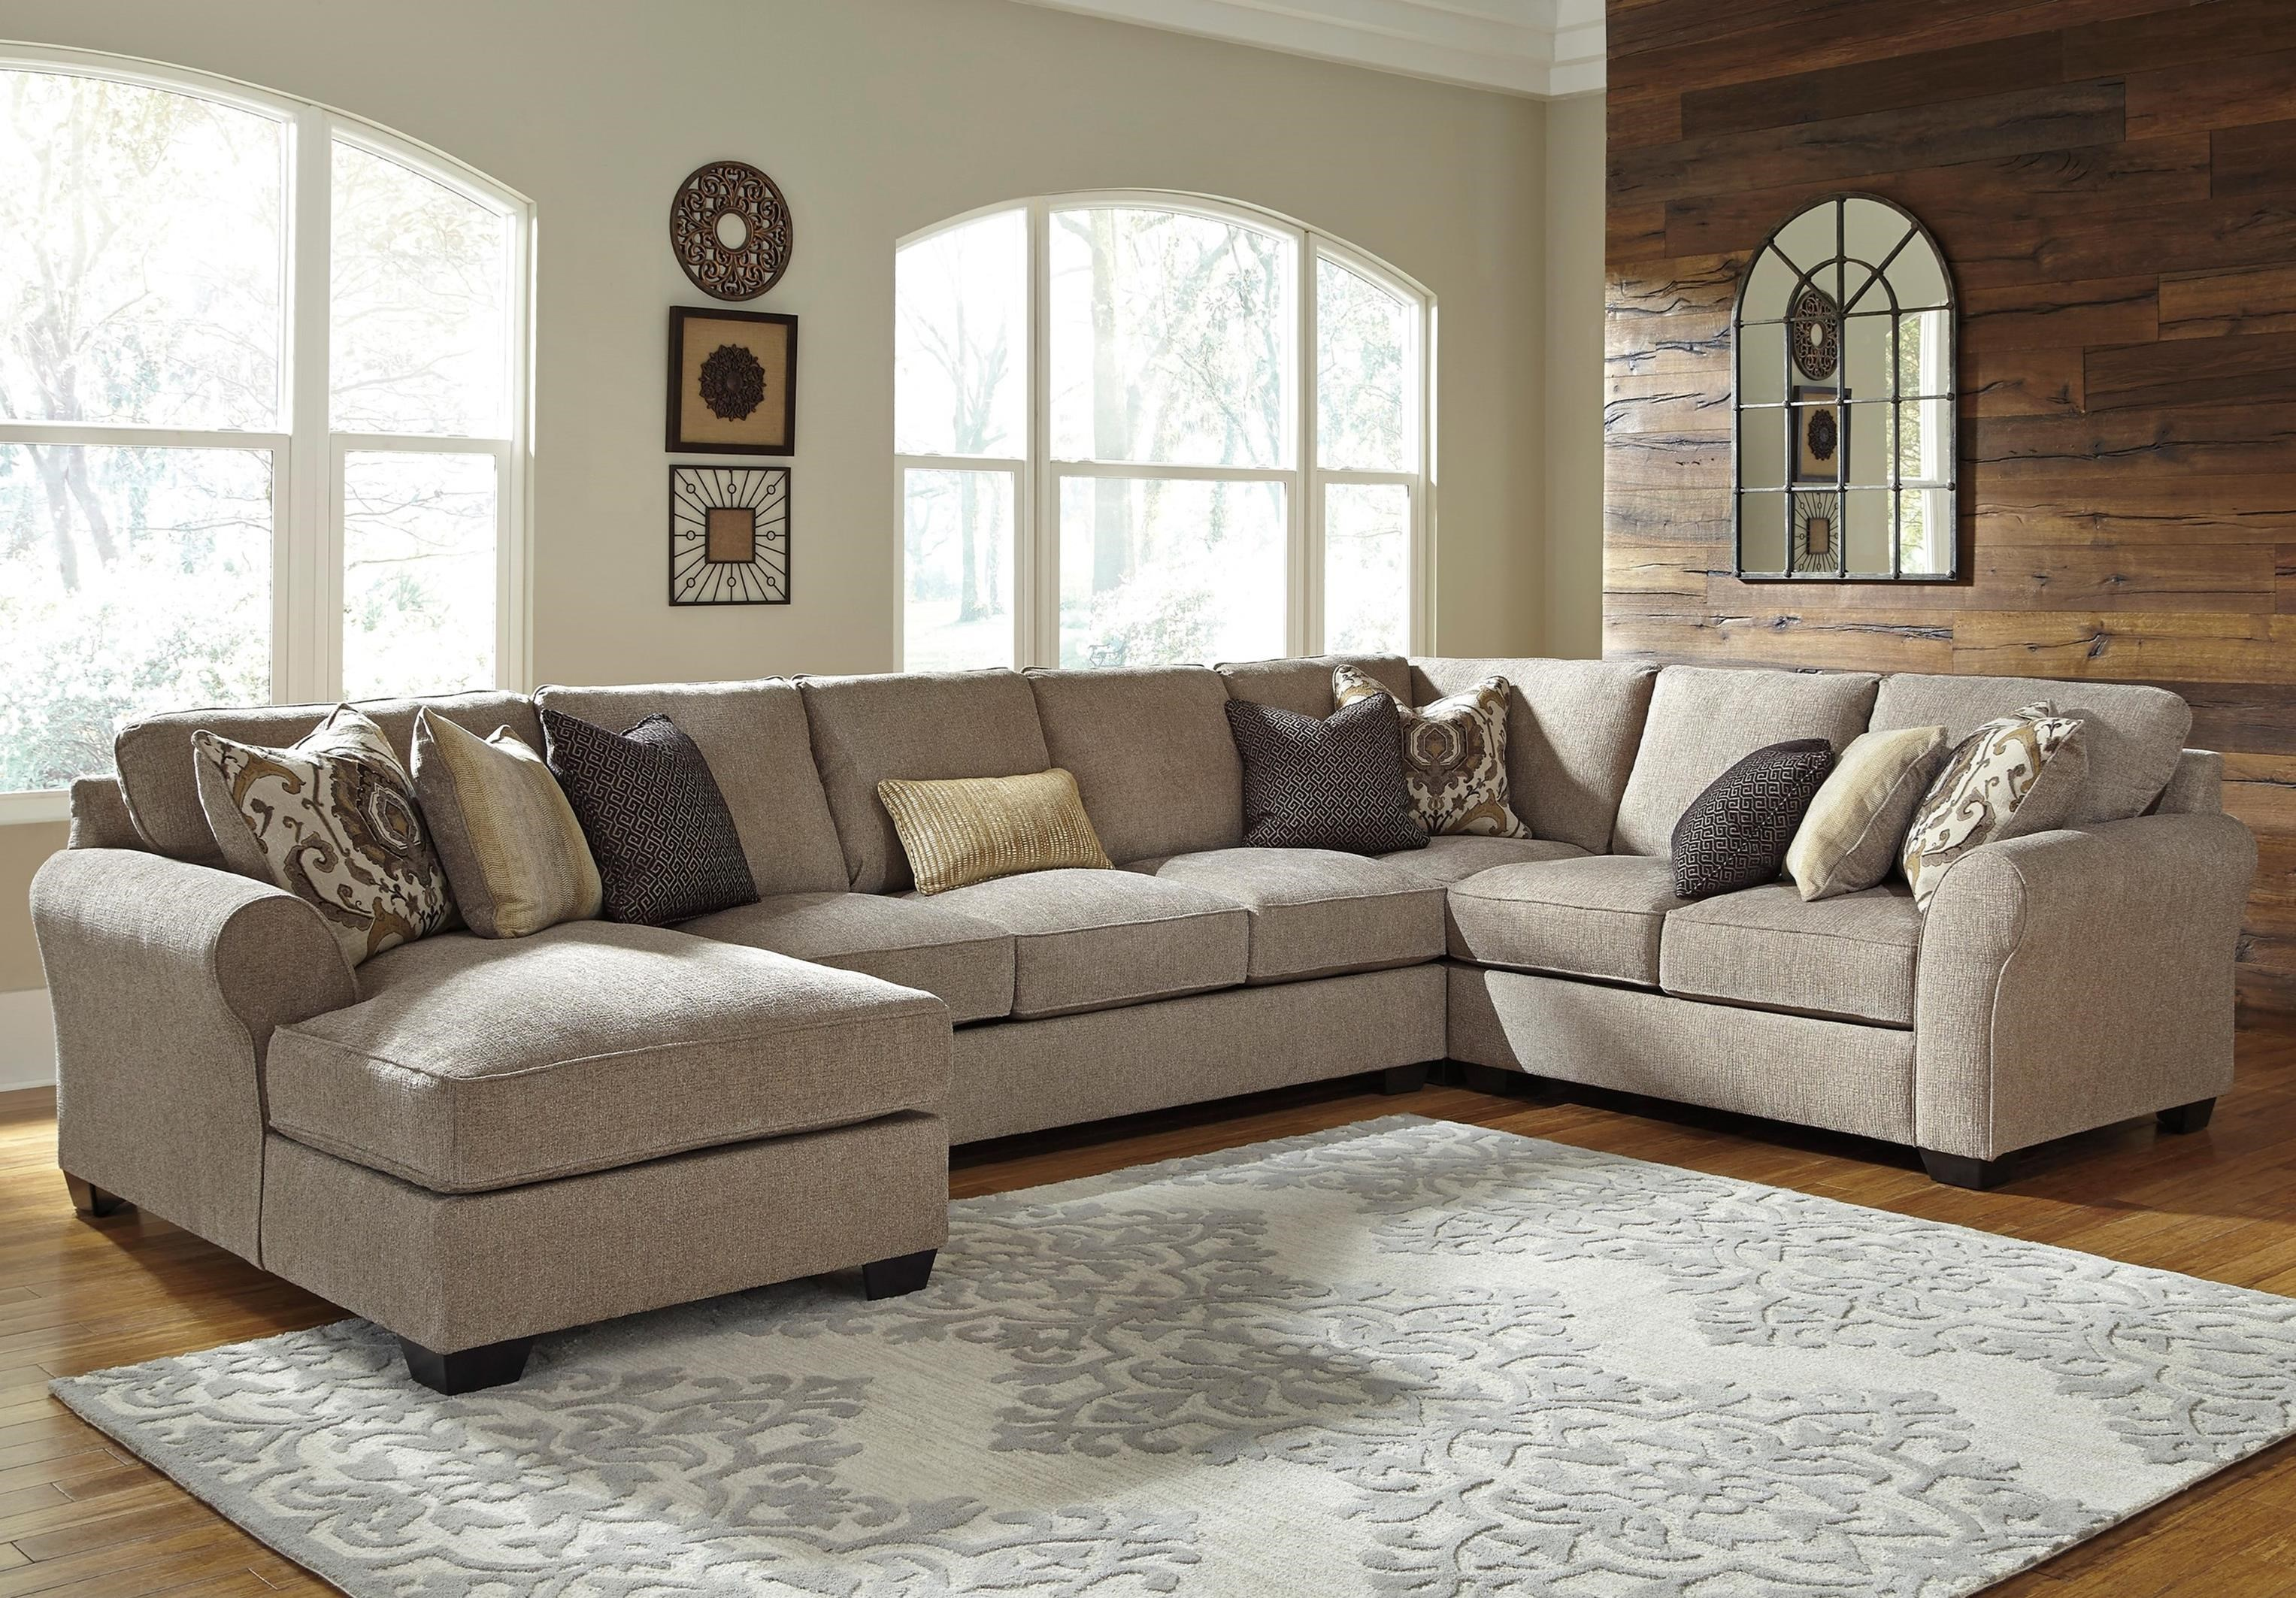 armless sofas cream colored leather sofa benchcraft pantomine 4 piece sectional w left chaise pantomine4